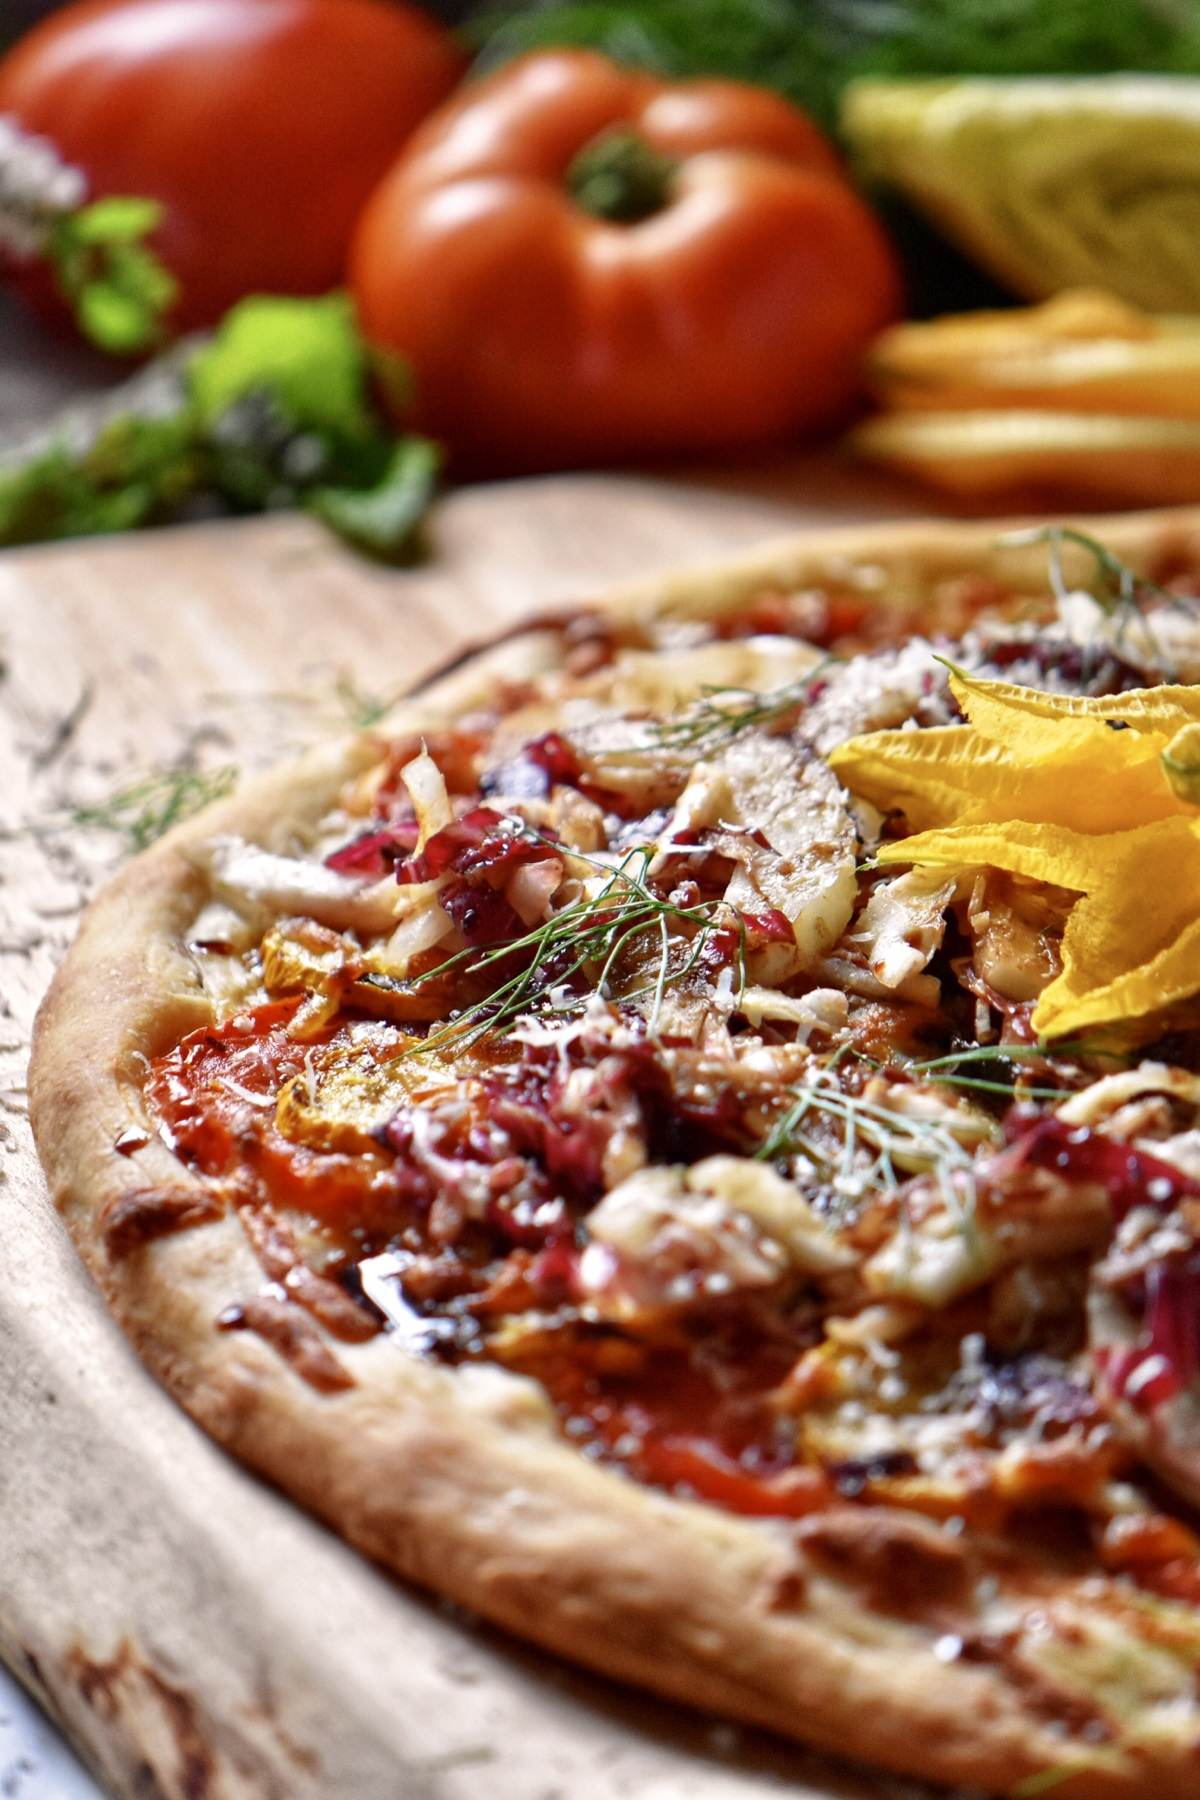 A pizza topped with endive, radicchio and fennel on a wooden board.